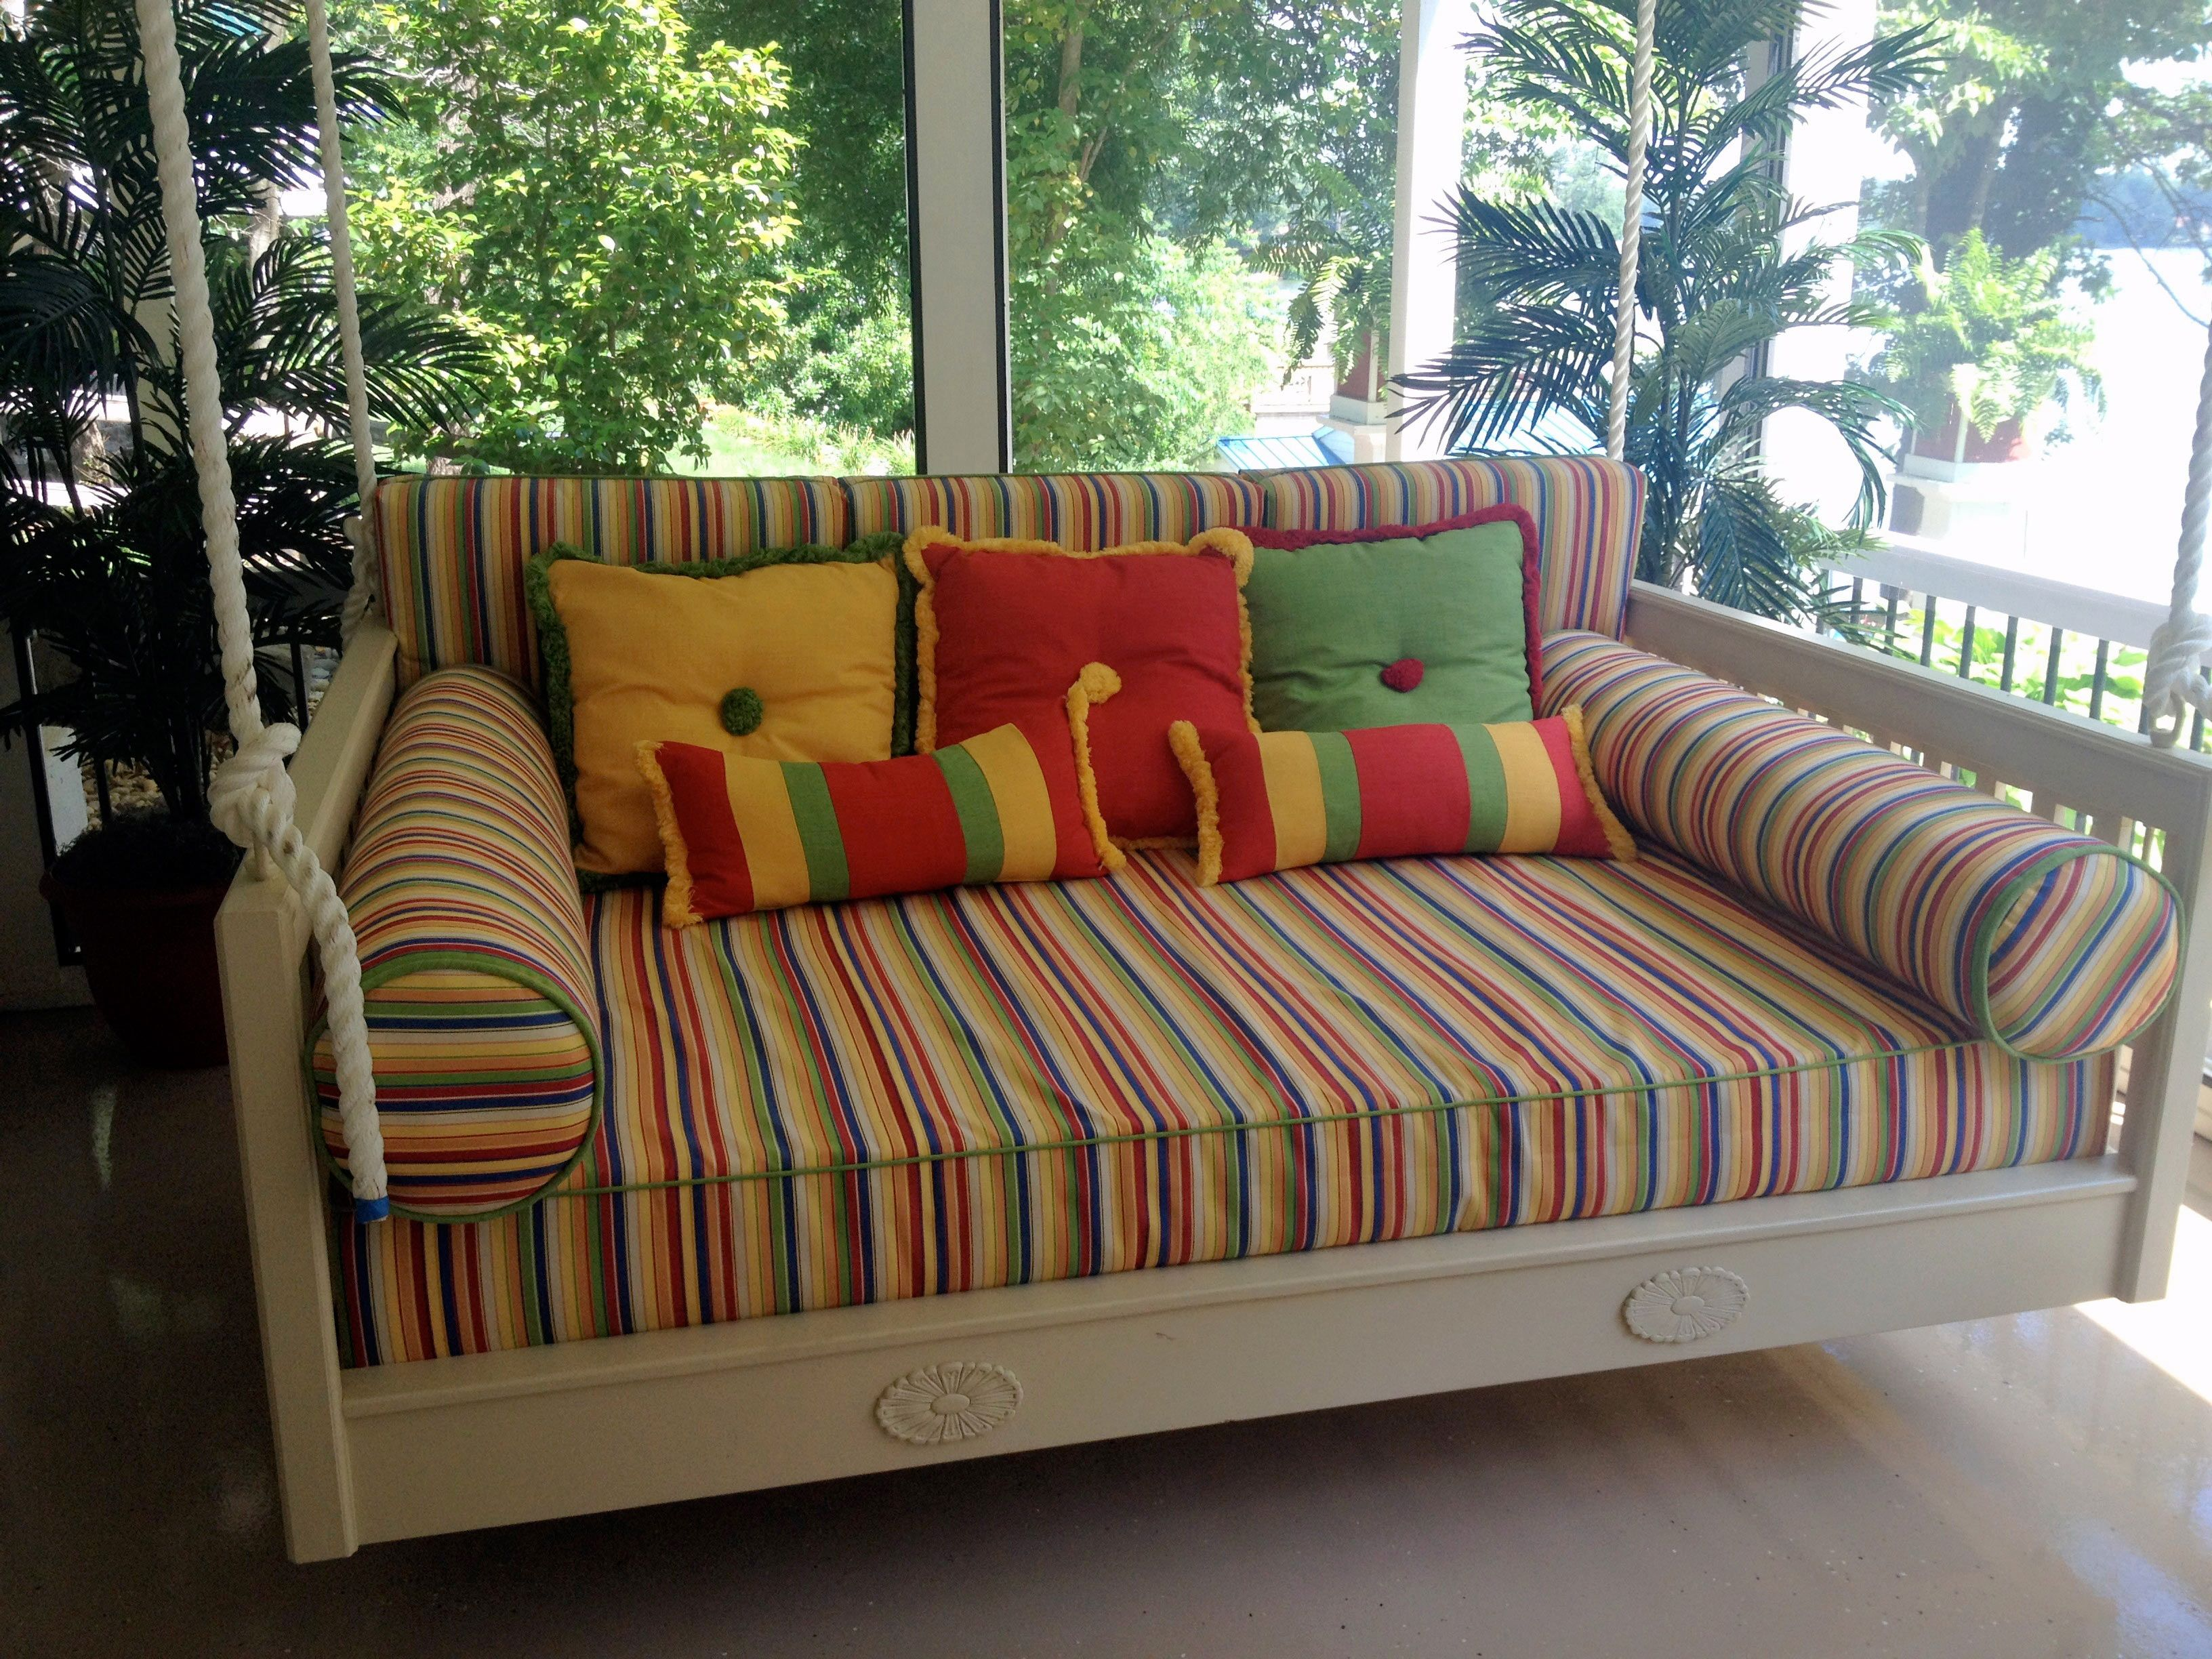 daybed cushions stunning bomelconsult floor of beautiful mattress outdoor